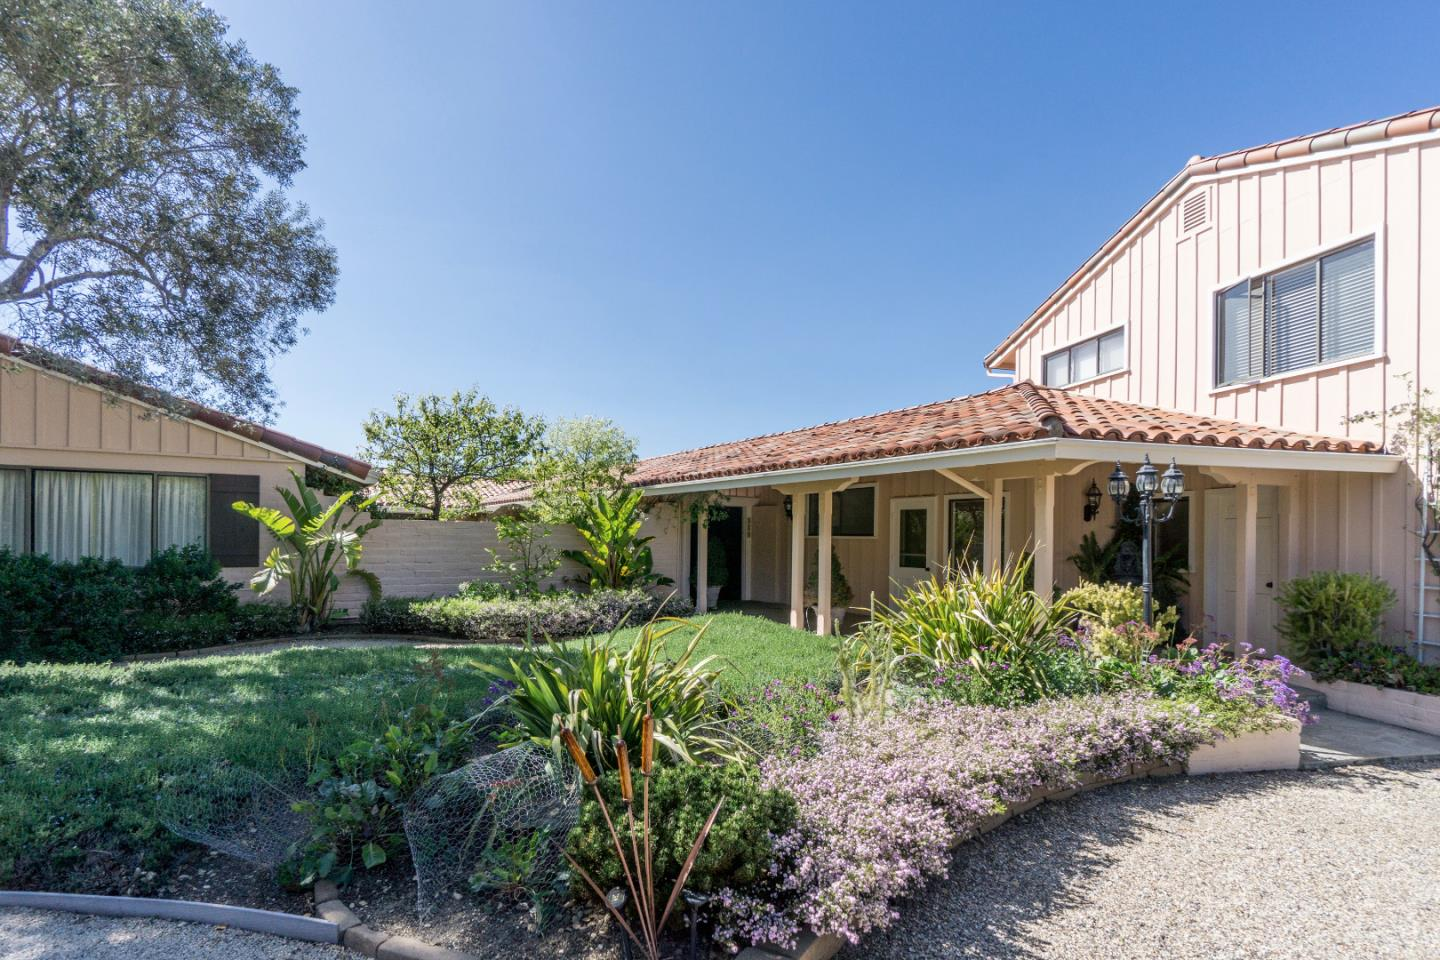 310 Country Club Heights, CARMEL VALLEY, CA 93924